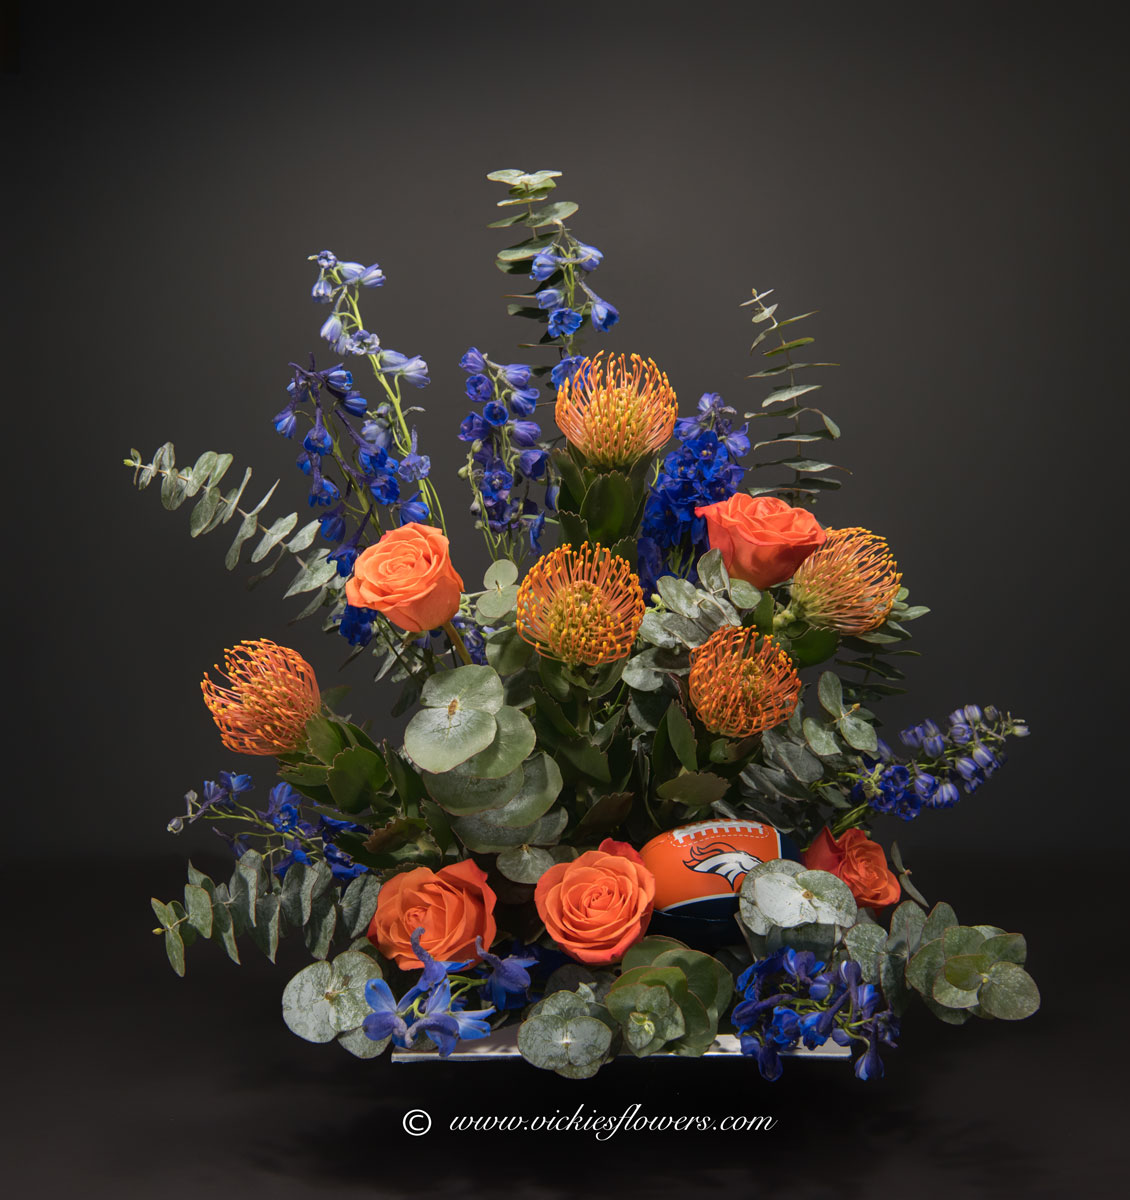 Broncos harley funeral flowers vickies flowers brighton co florist unique themed sympathy 032 150 plus tax and delivery broncos red and orange themed sympathy with football arrangement with orange pin cushion protea izmirmasajfo Choice Image